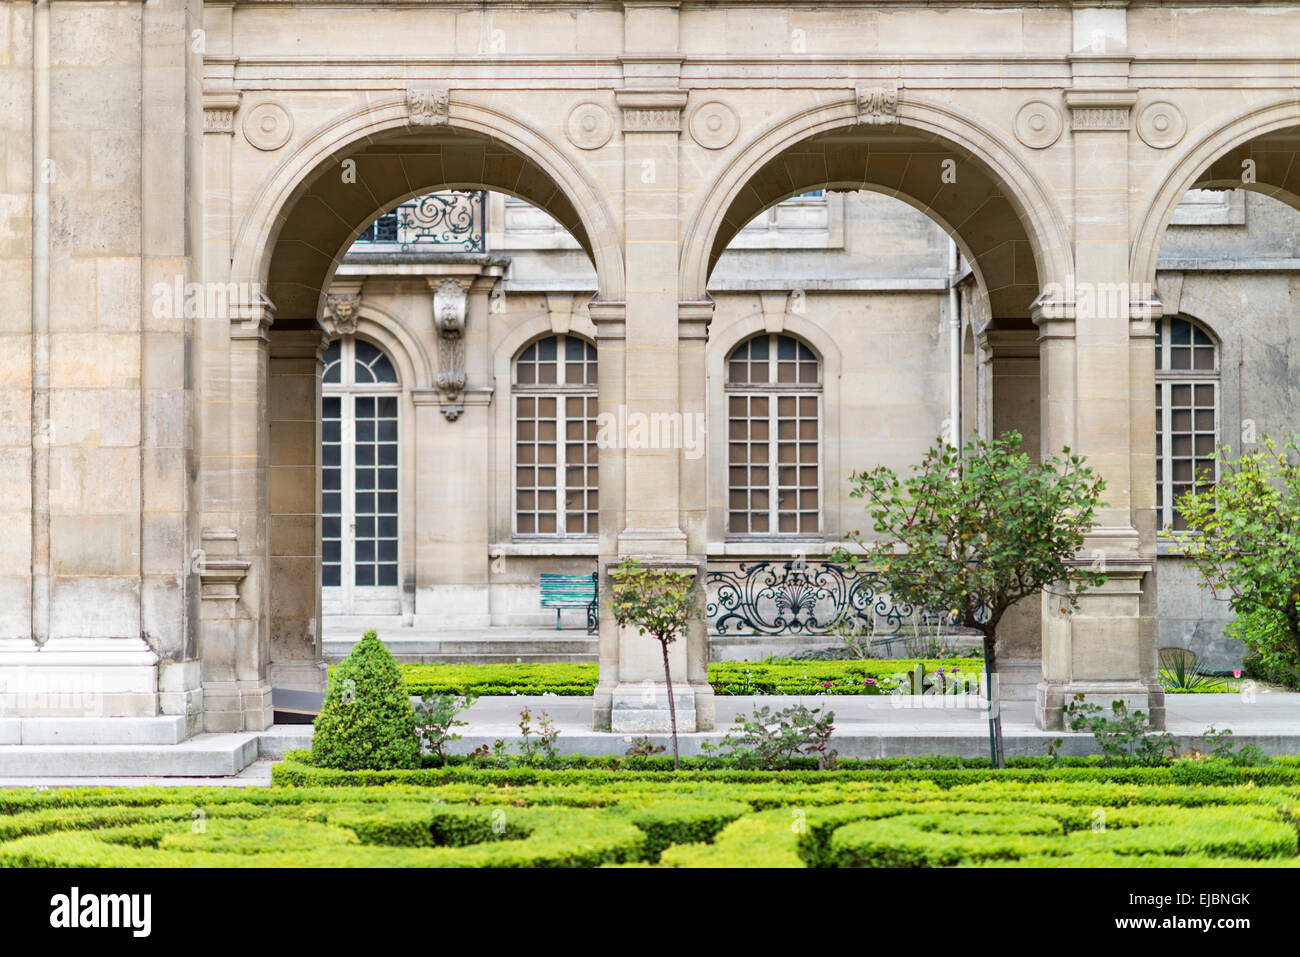 Courtyard and garden of the Carnavalet Museum, Paris, France - Stock Image